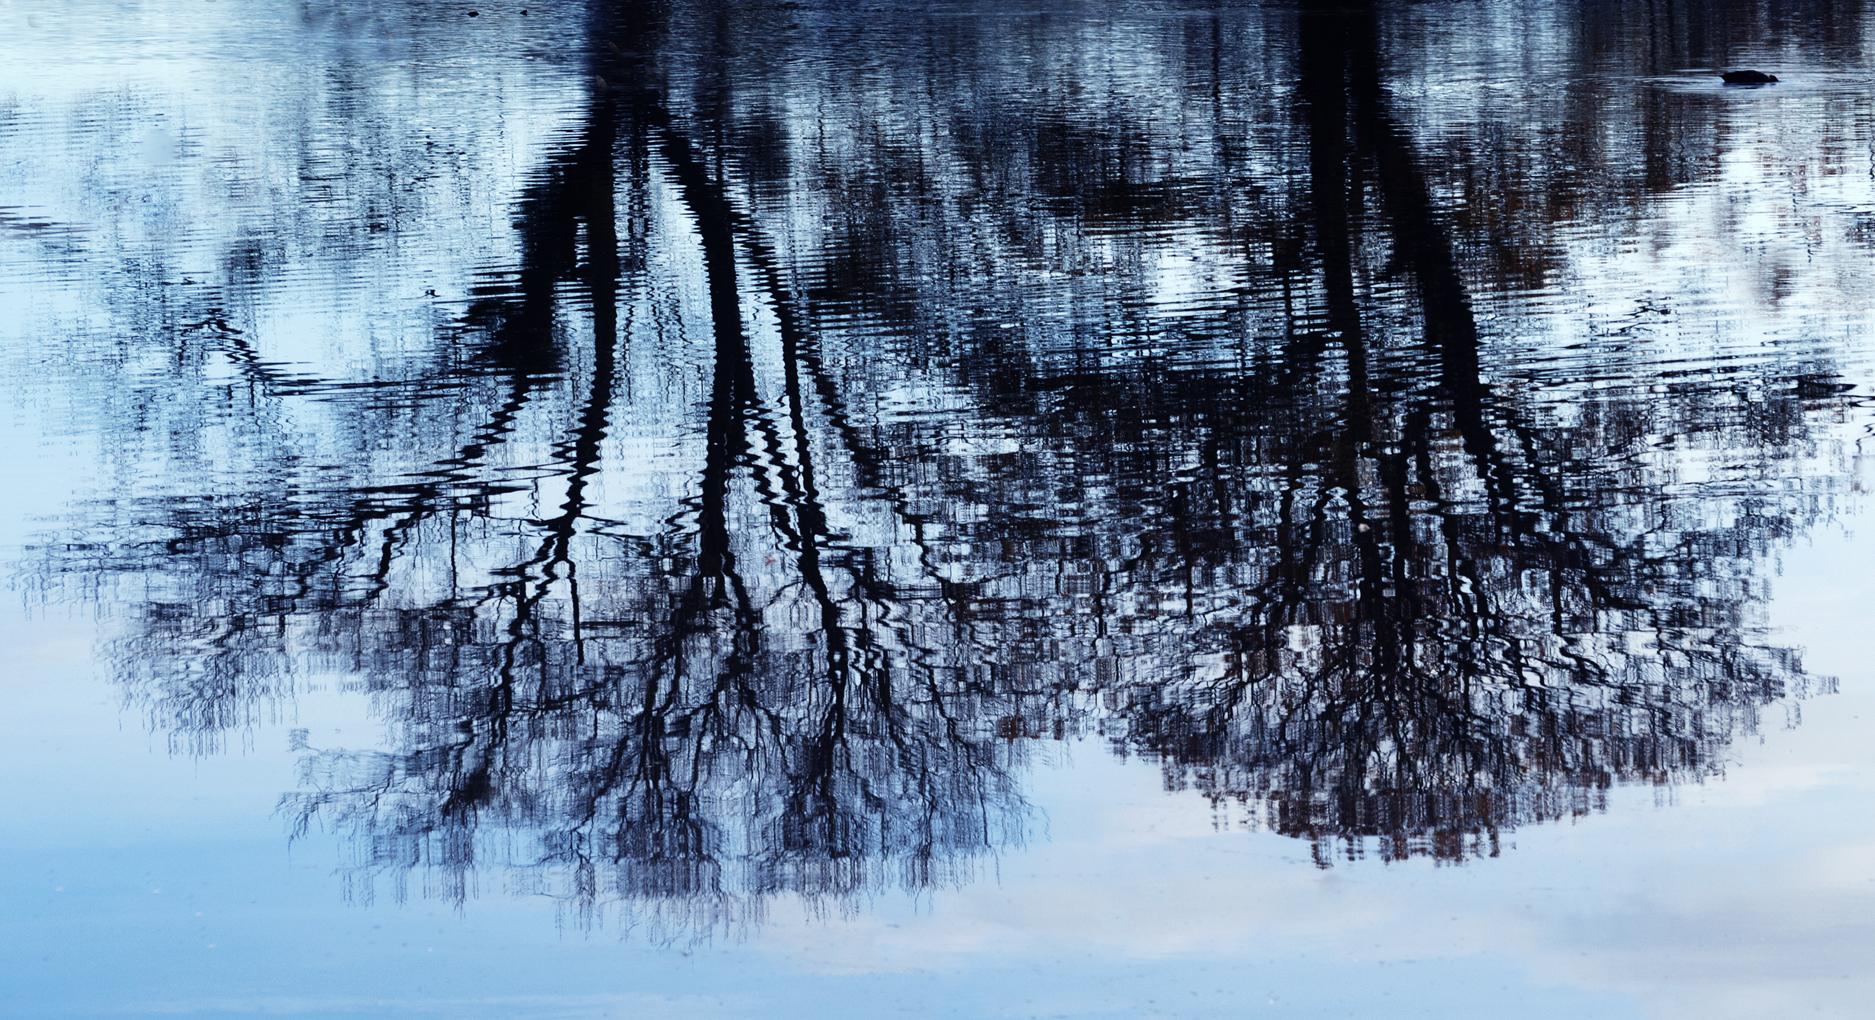 14 Points - Trees in reflection - David King